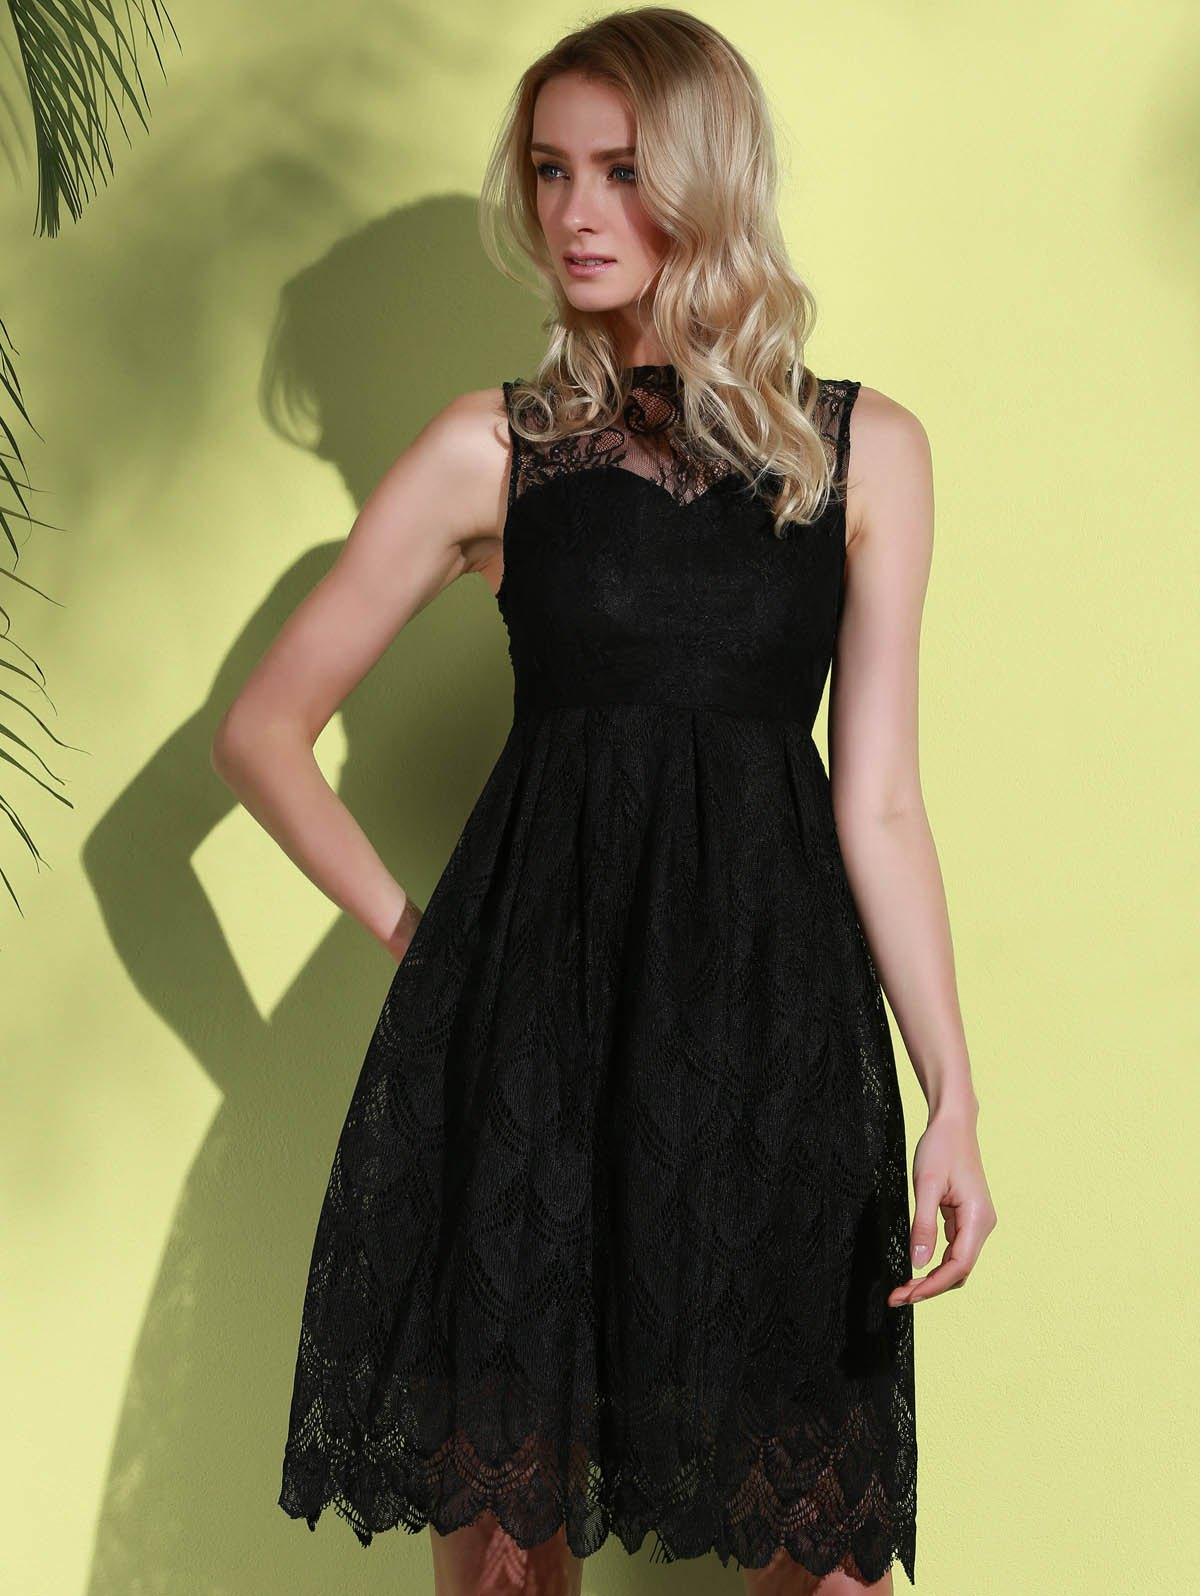 Stylish Round Neck Sleeveless Hollow Out Solid Color Lace Women's Dress how to be a detective